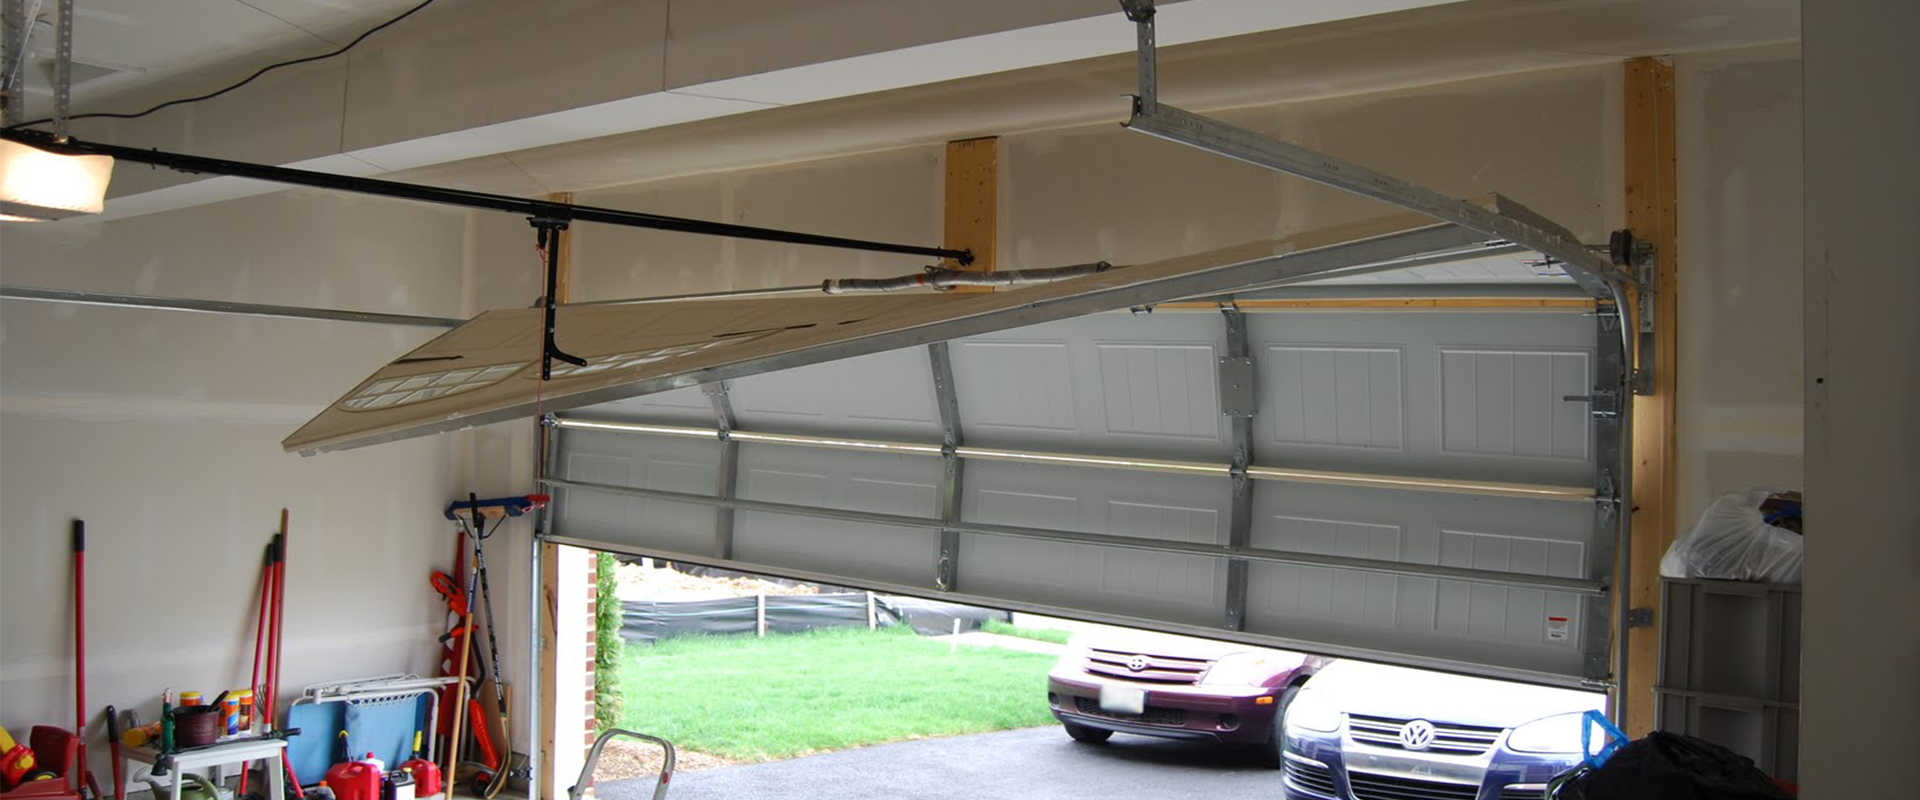 911 Garage Door Repair Chicago Il Garage Doors Experts